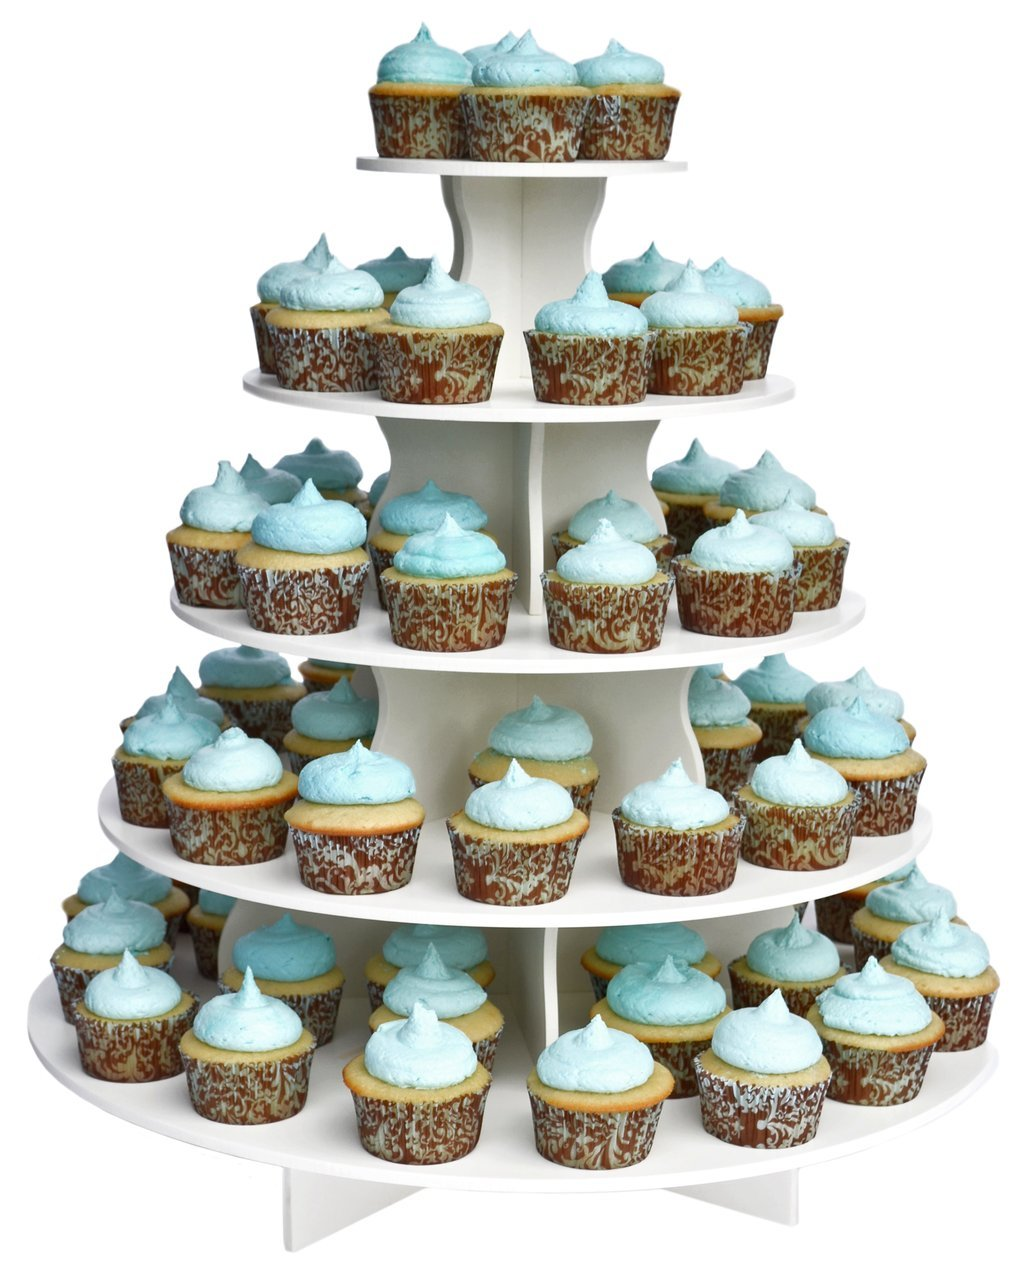 The Smart Baker 5 Tier Round Cupcake Stand PRO- Holds 90+ Cupcakes As Seen on Shark Tank Professional Cupcake Tower by The Smart Baker